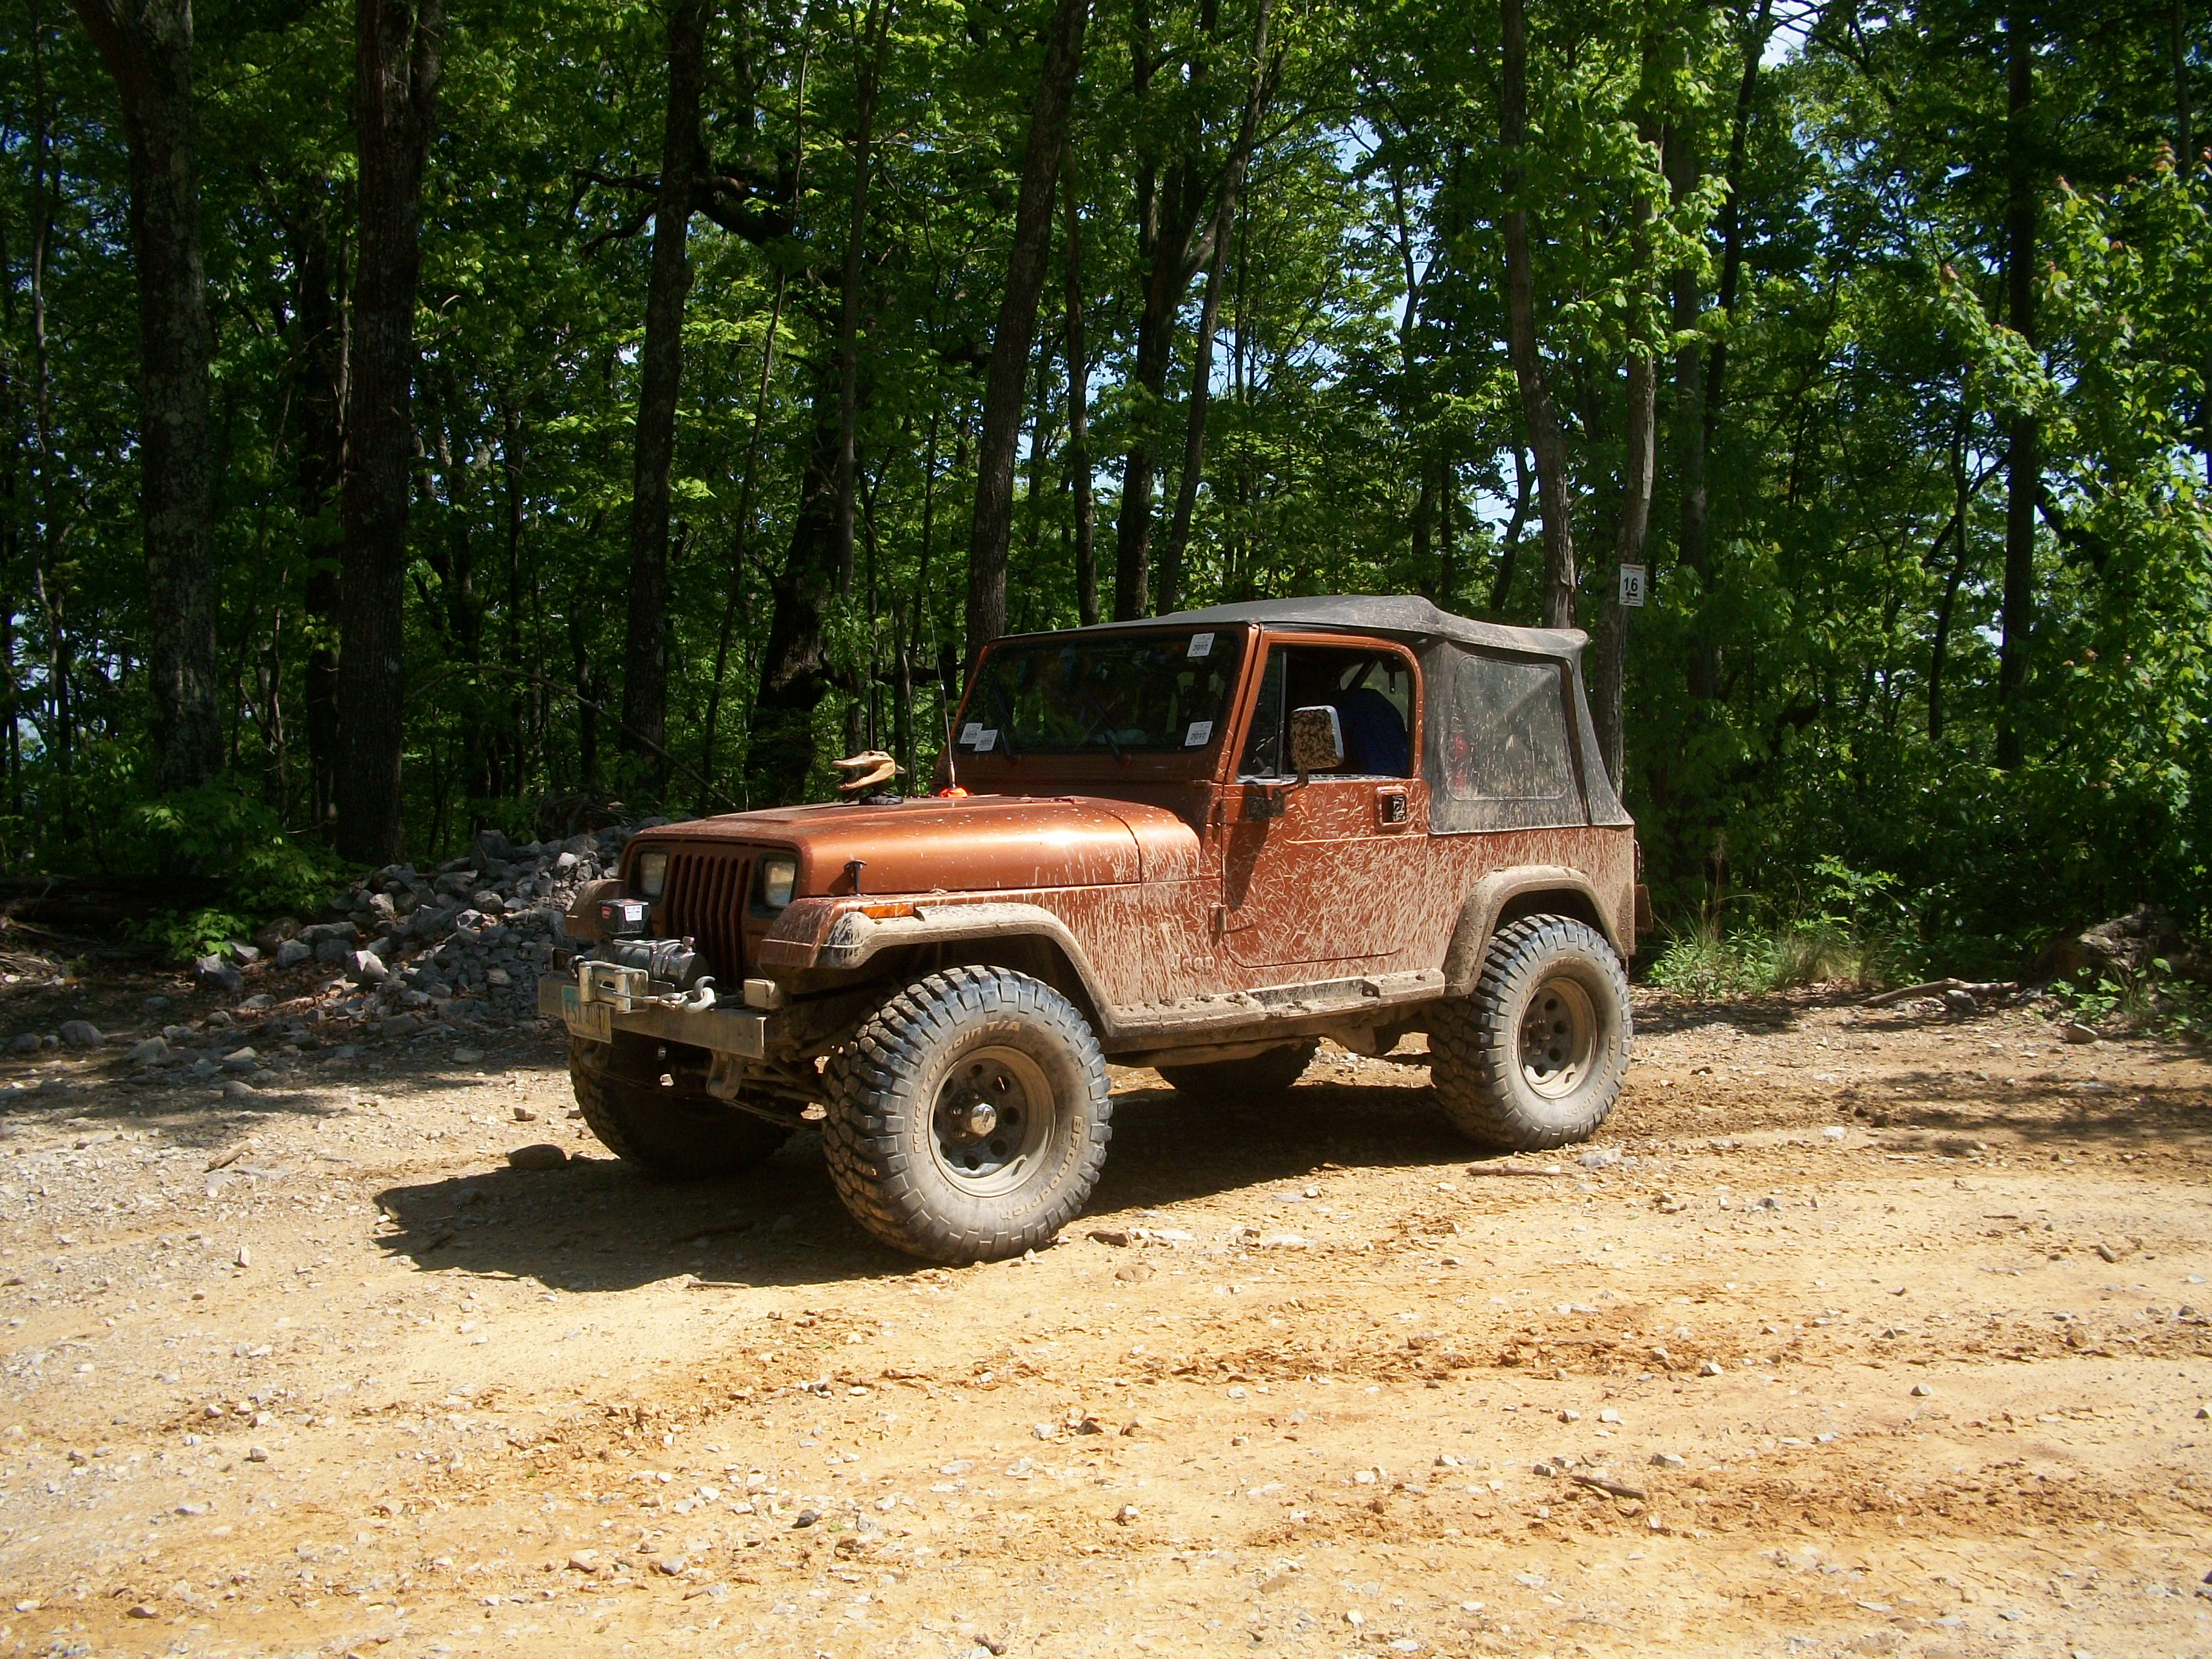 Click image for larger version  Name:Jeepin2012 087.JPG Views:169 Size:2.34 MB ID:124402